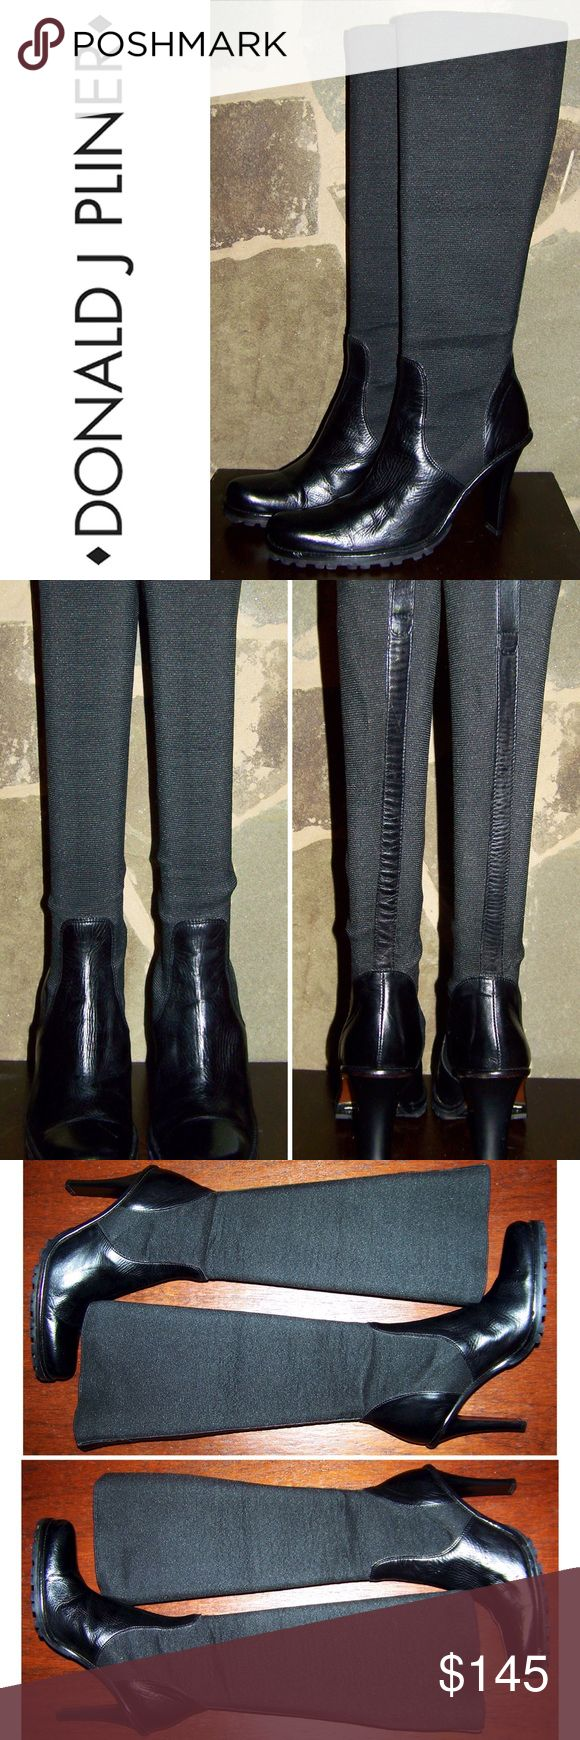 "Donald Pliner Black Leather Knee High Stretch Boot Donald J Pliner black leather elastic stretch knee high boots size 6. Great condition may be a bit of stretching in the elastic, some creasing in toe upper, please see photos. Heel height is 4"". Clean and ready to wear.   f454 Donald J. Pliner Shoes Heeled Boots"